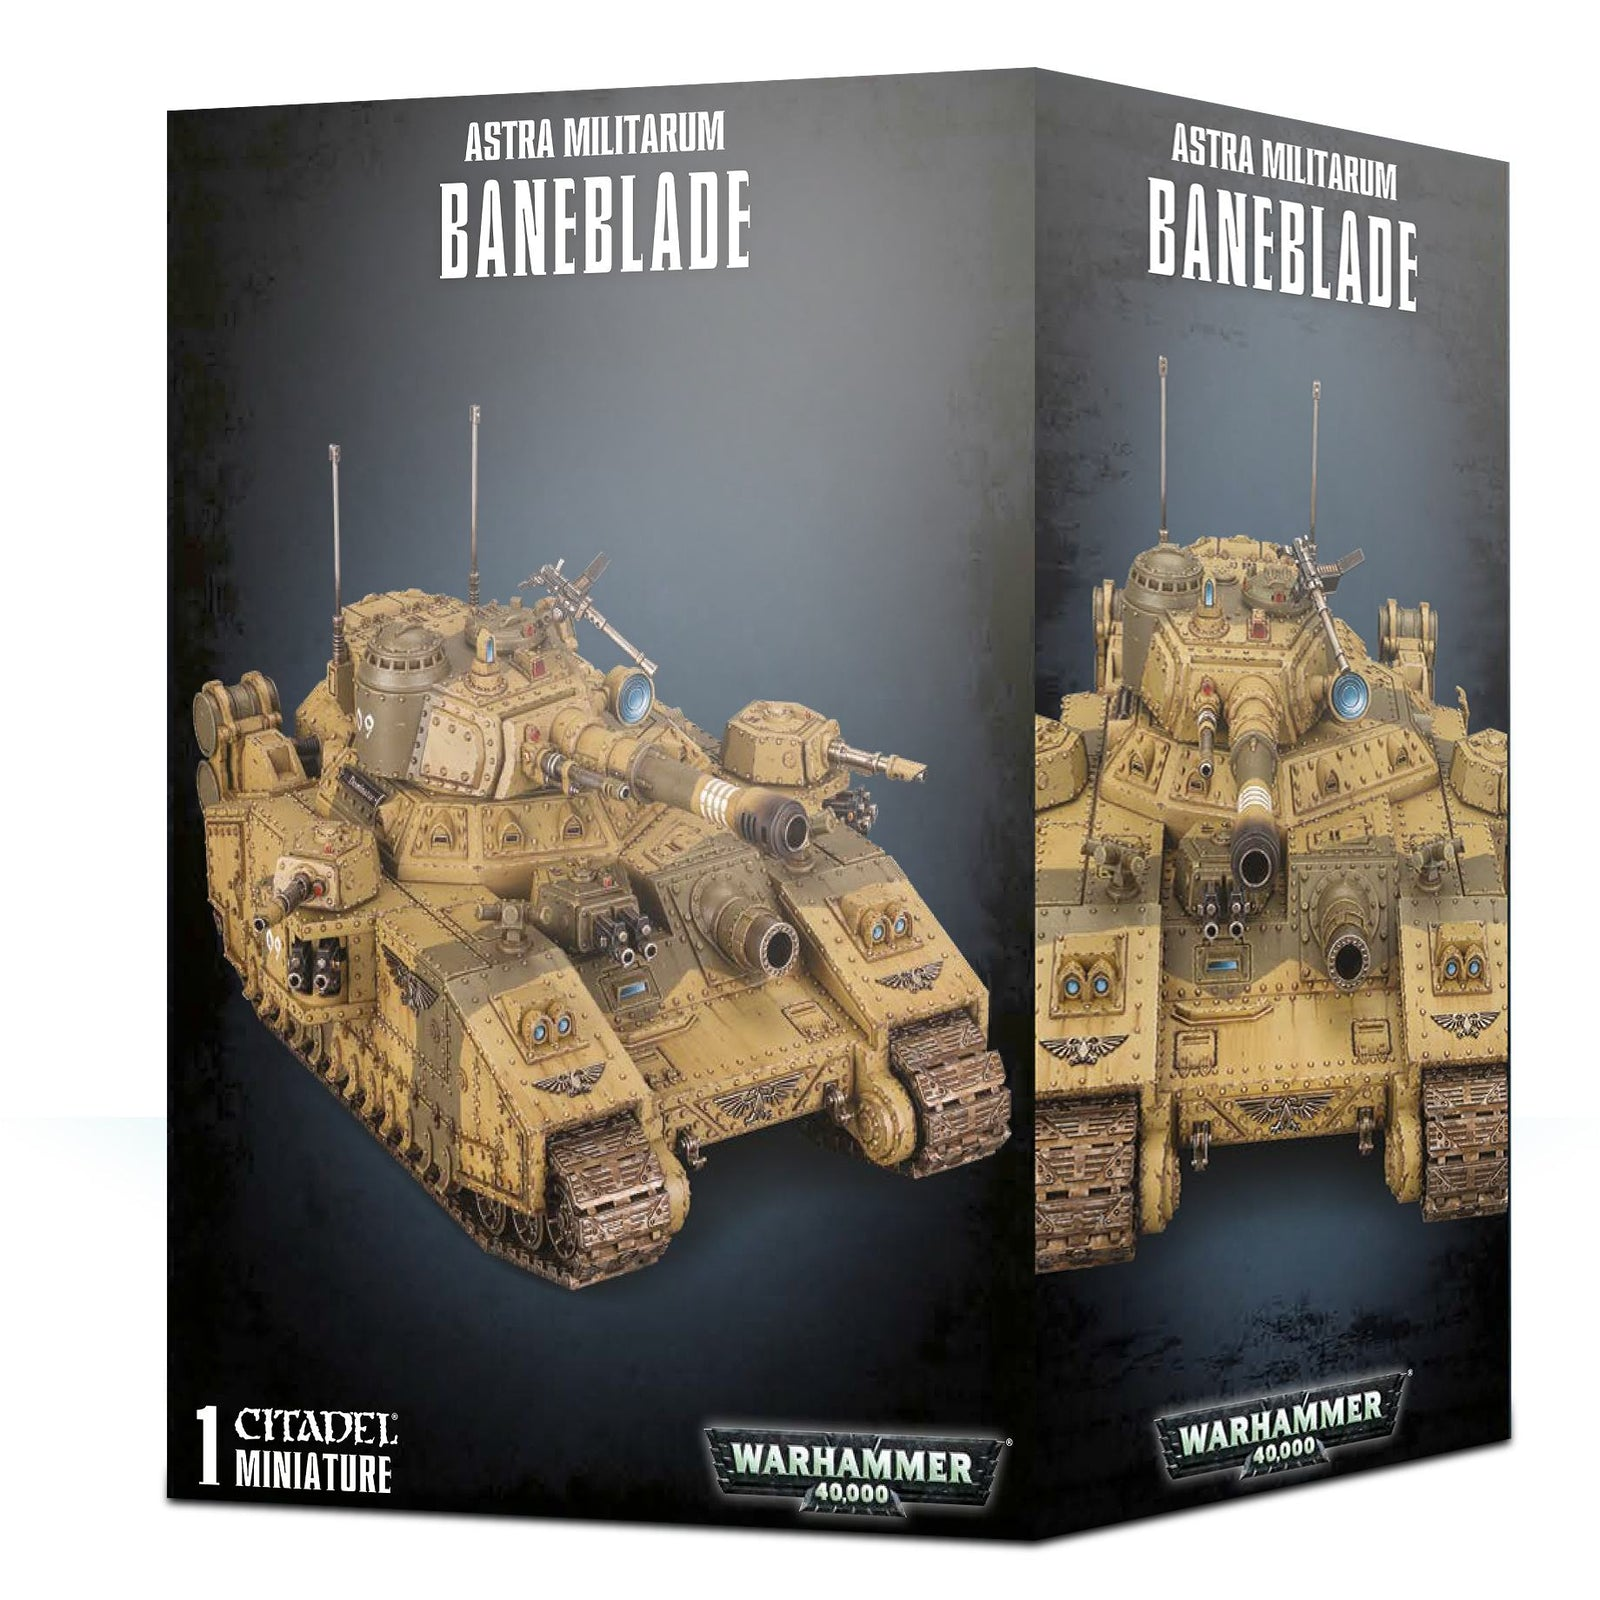 box packaging for Astra militarum Baneblade